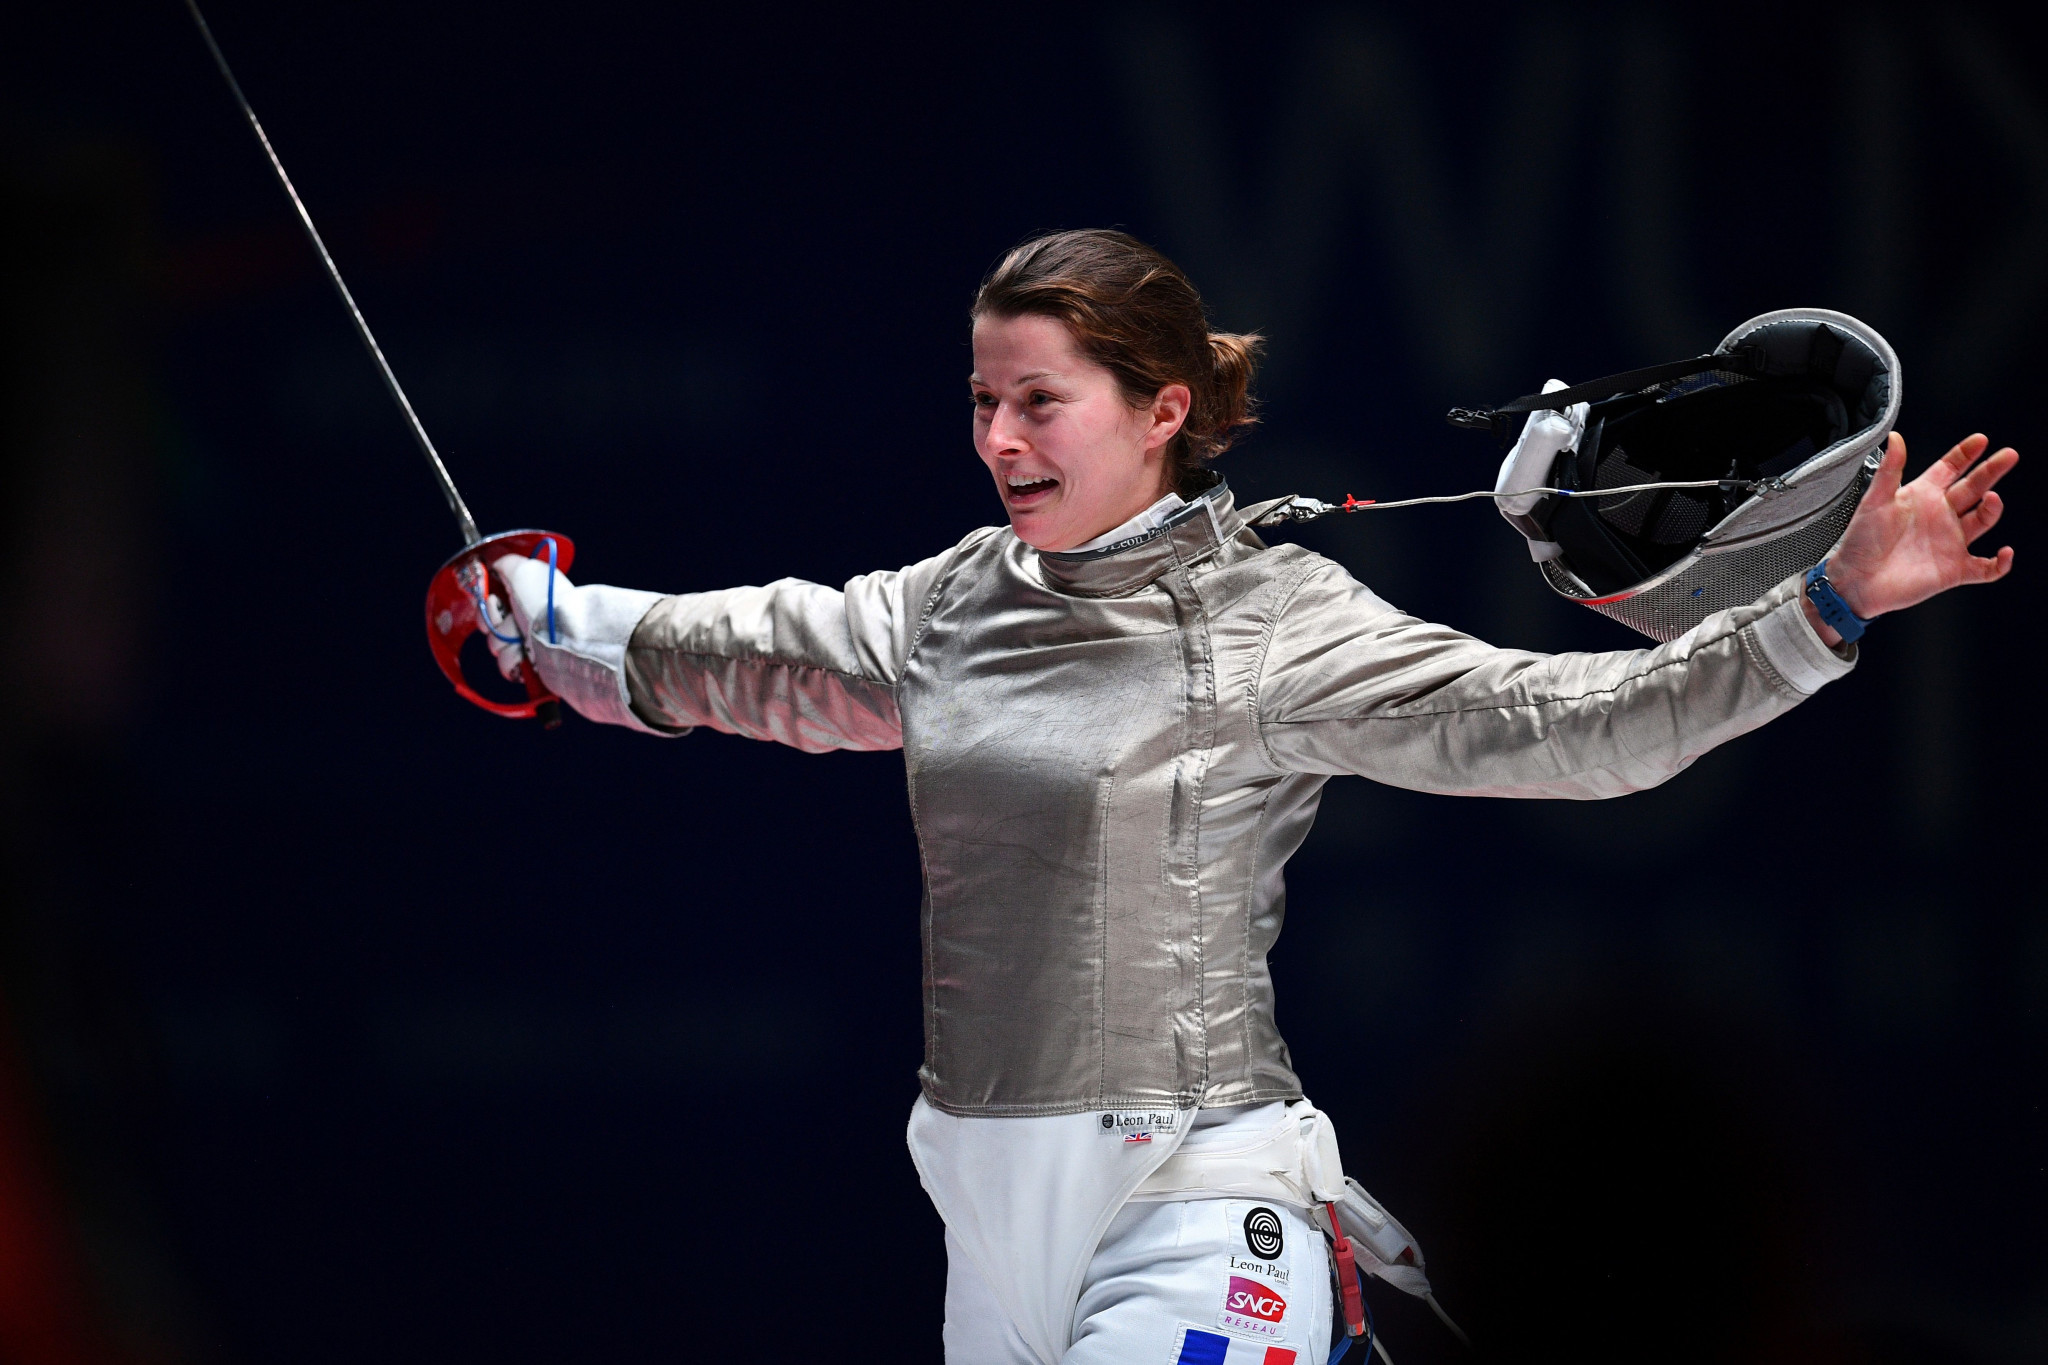 France's Cécilia Berder will bid for glory at the FIE Women's Sabre World Cup in Tunis tomorrow ©Getty Images